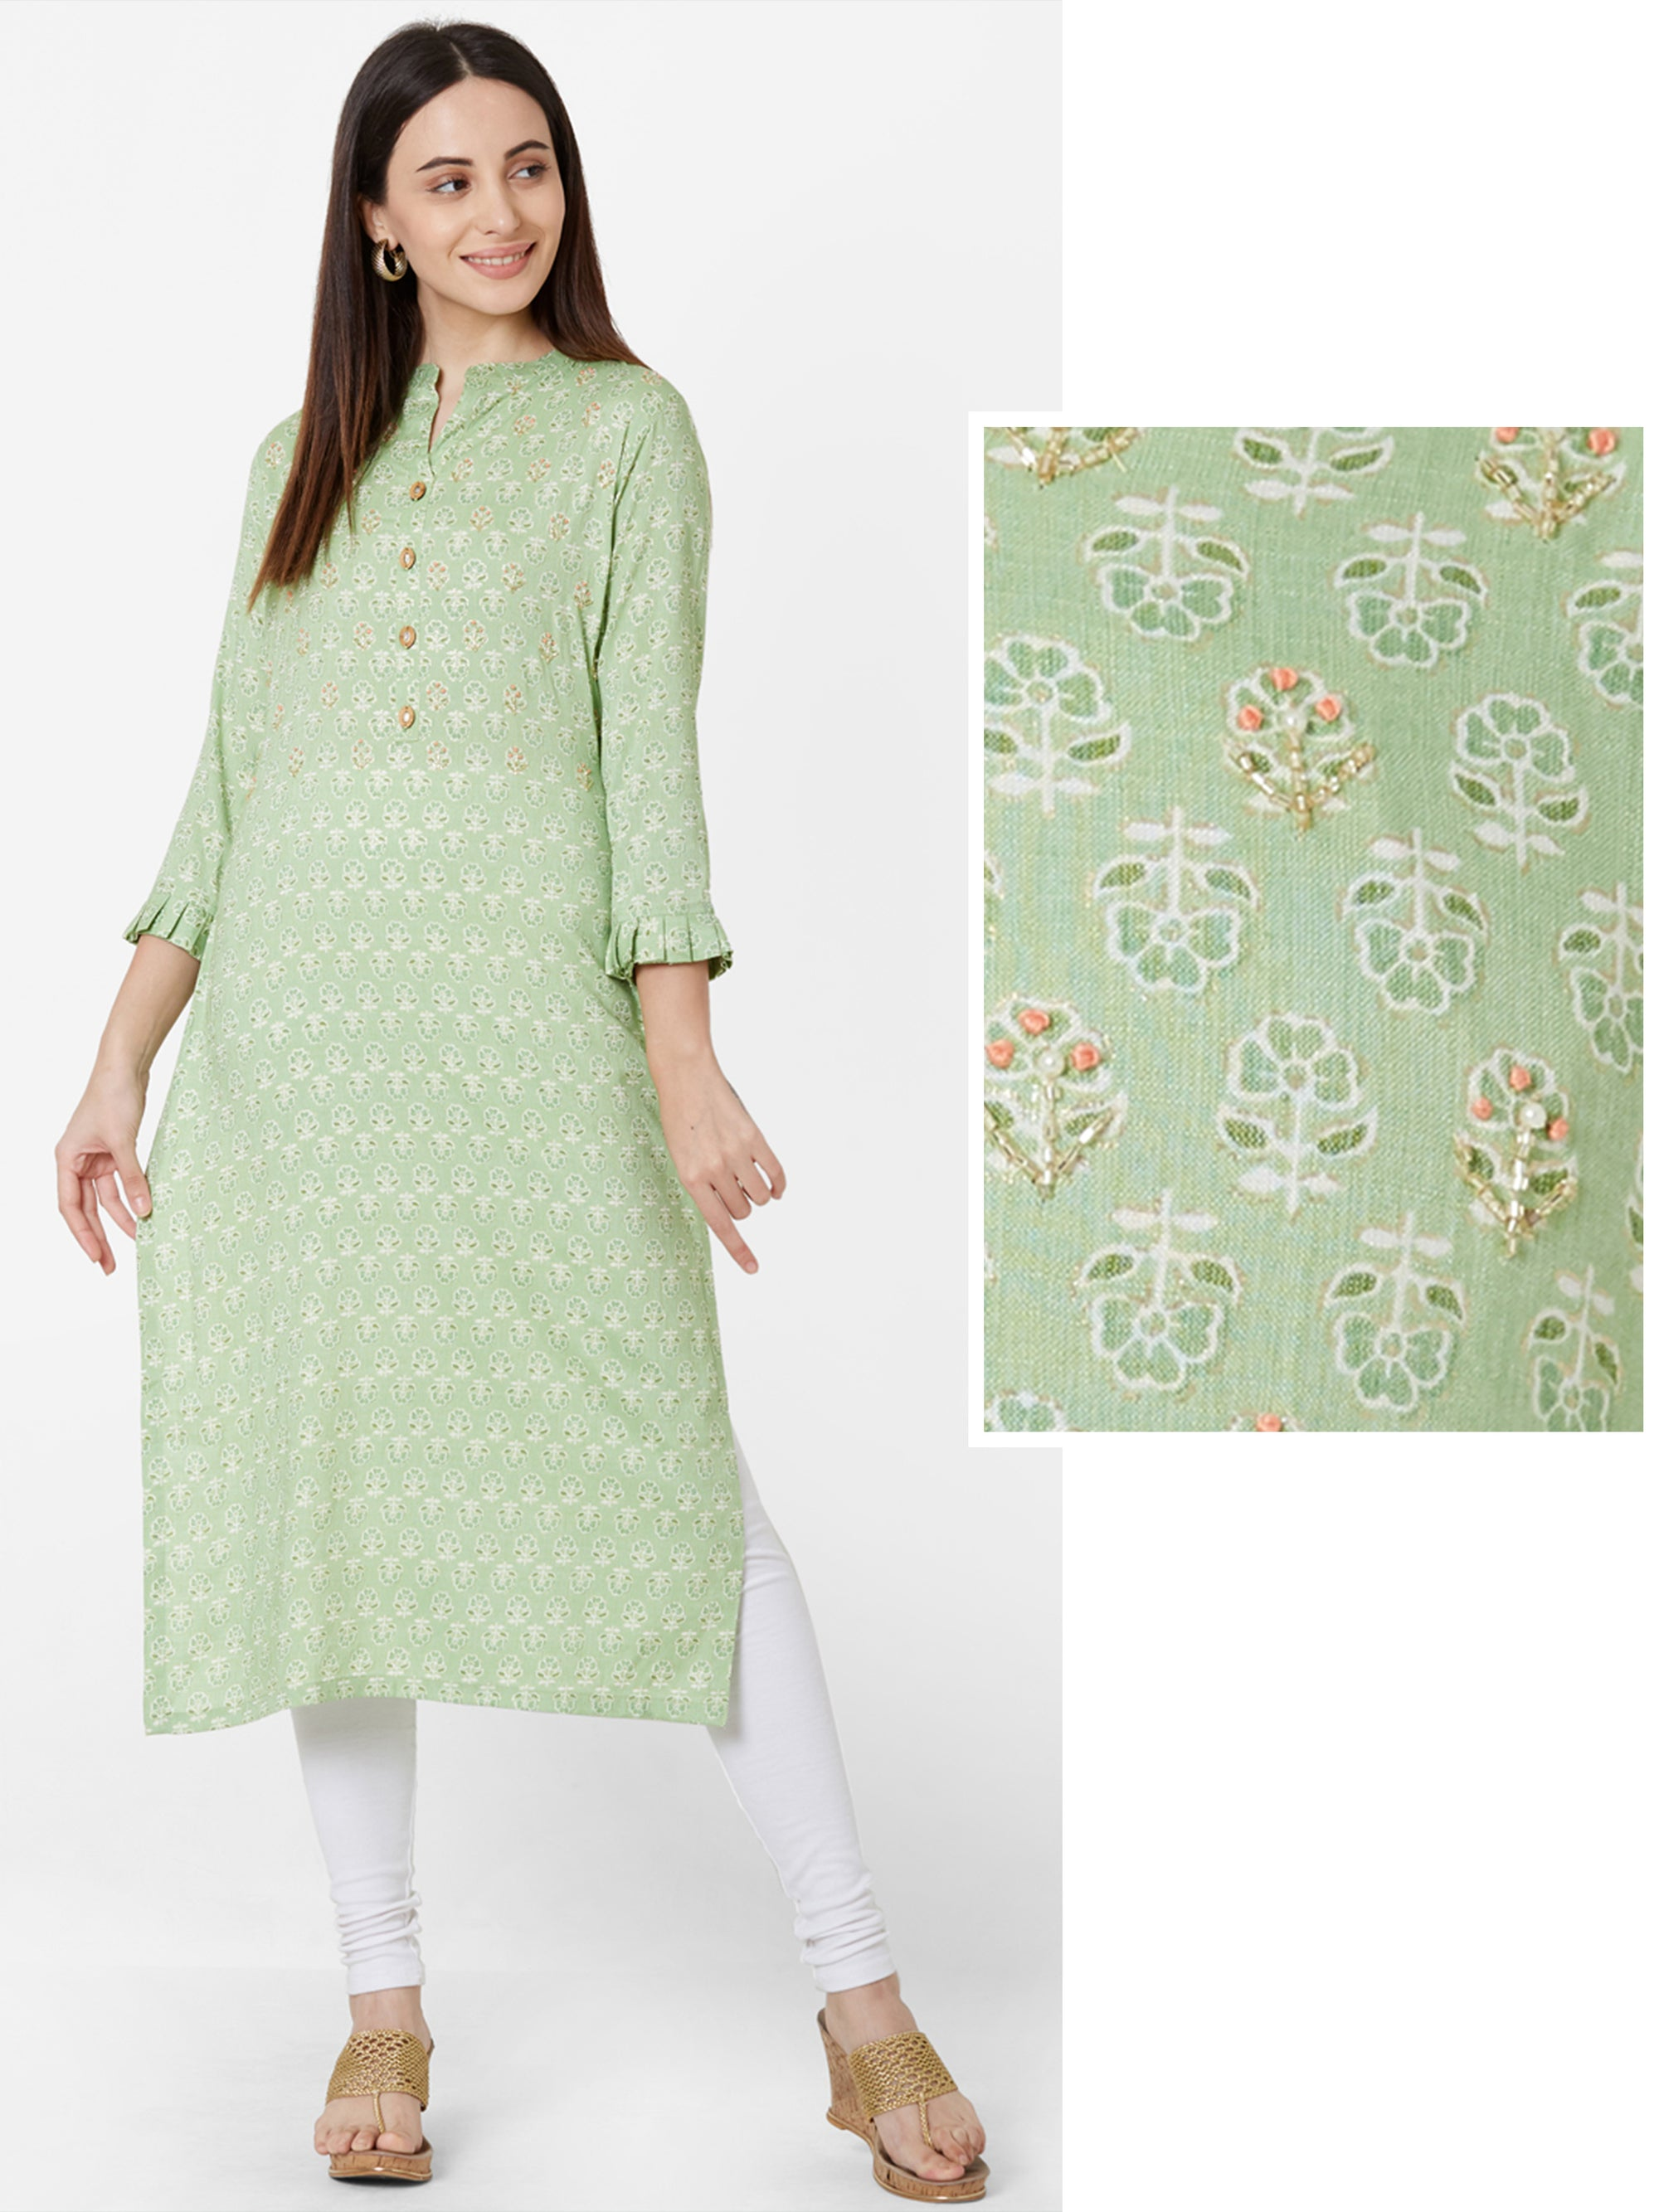 Floral Printed & Cutdana Embellished Cotton Kurta – Mint Green